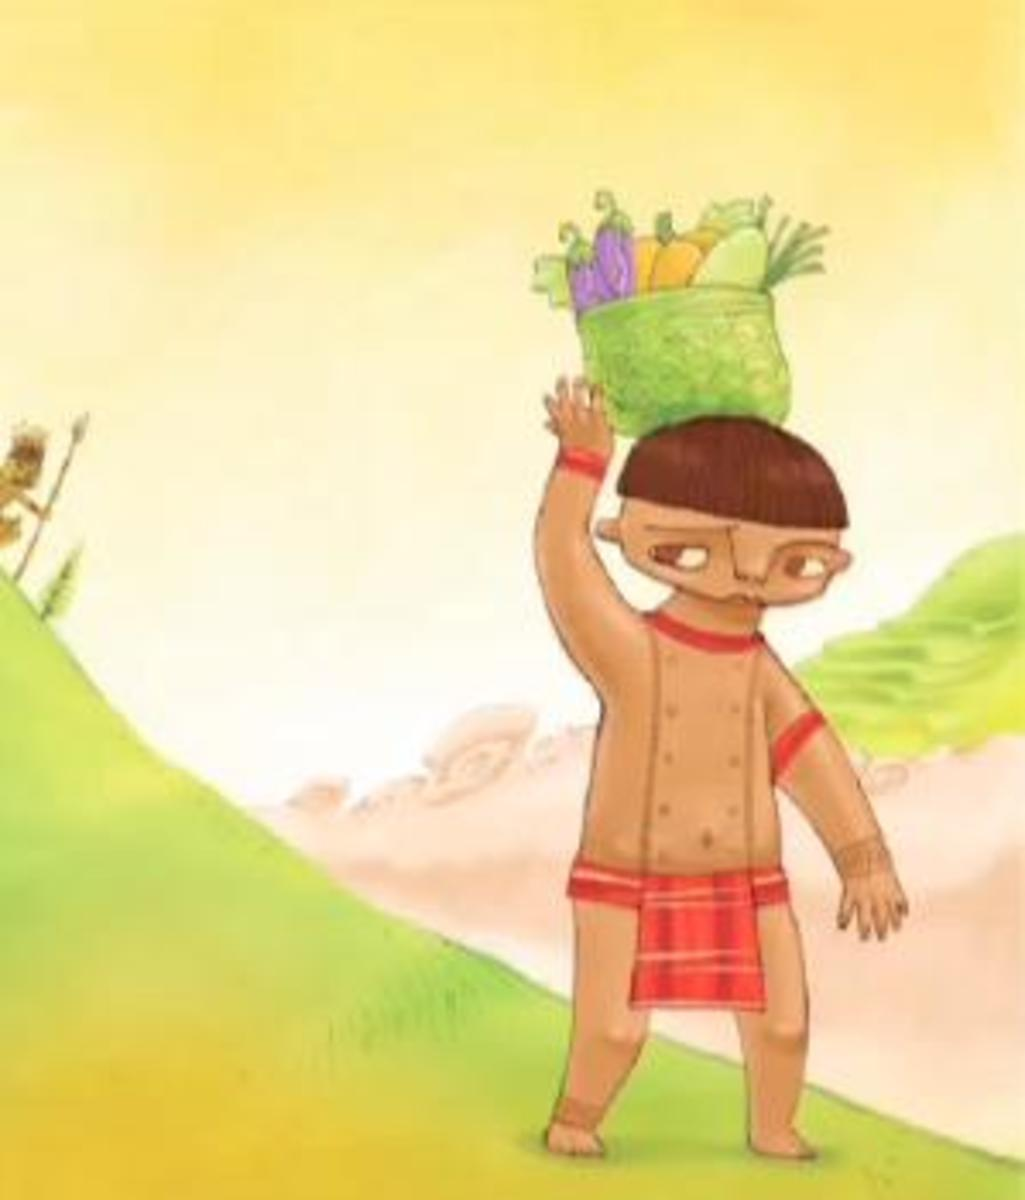 Pago is only 3 and 1/2 ft. in height at the age of 30. He is being  bullied and maltreated by the townspeople.